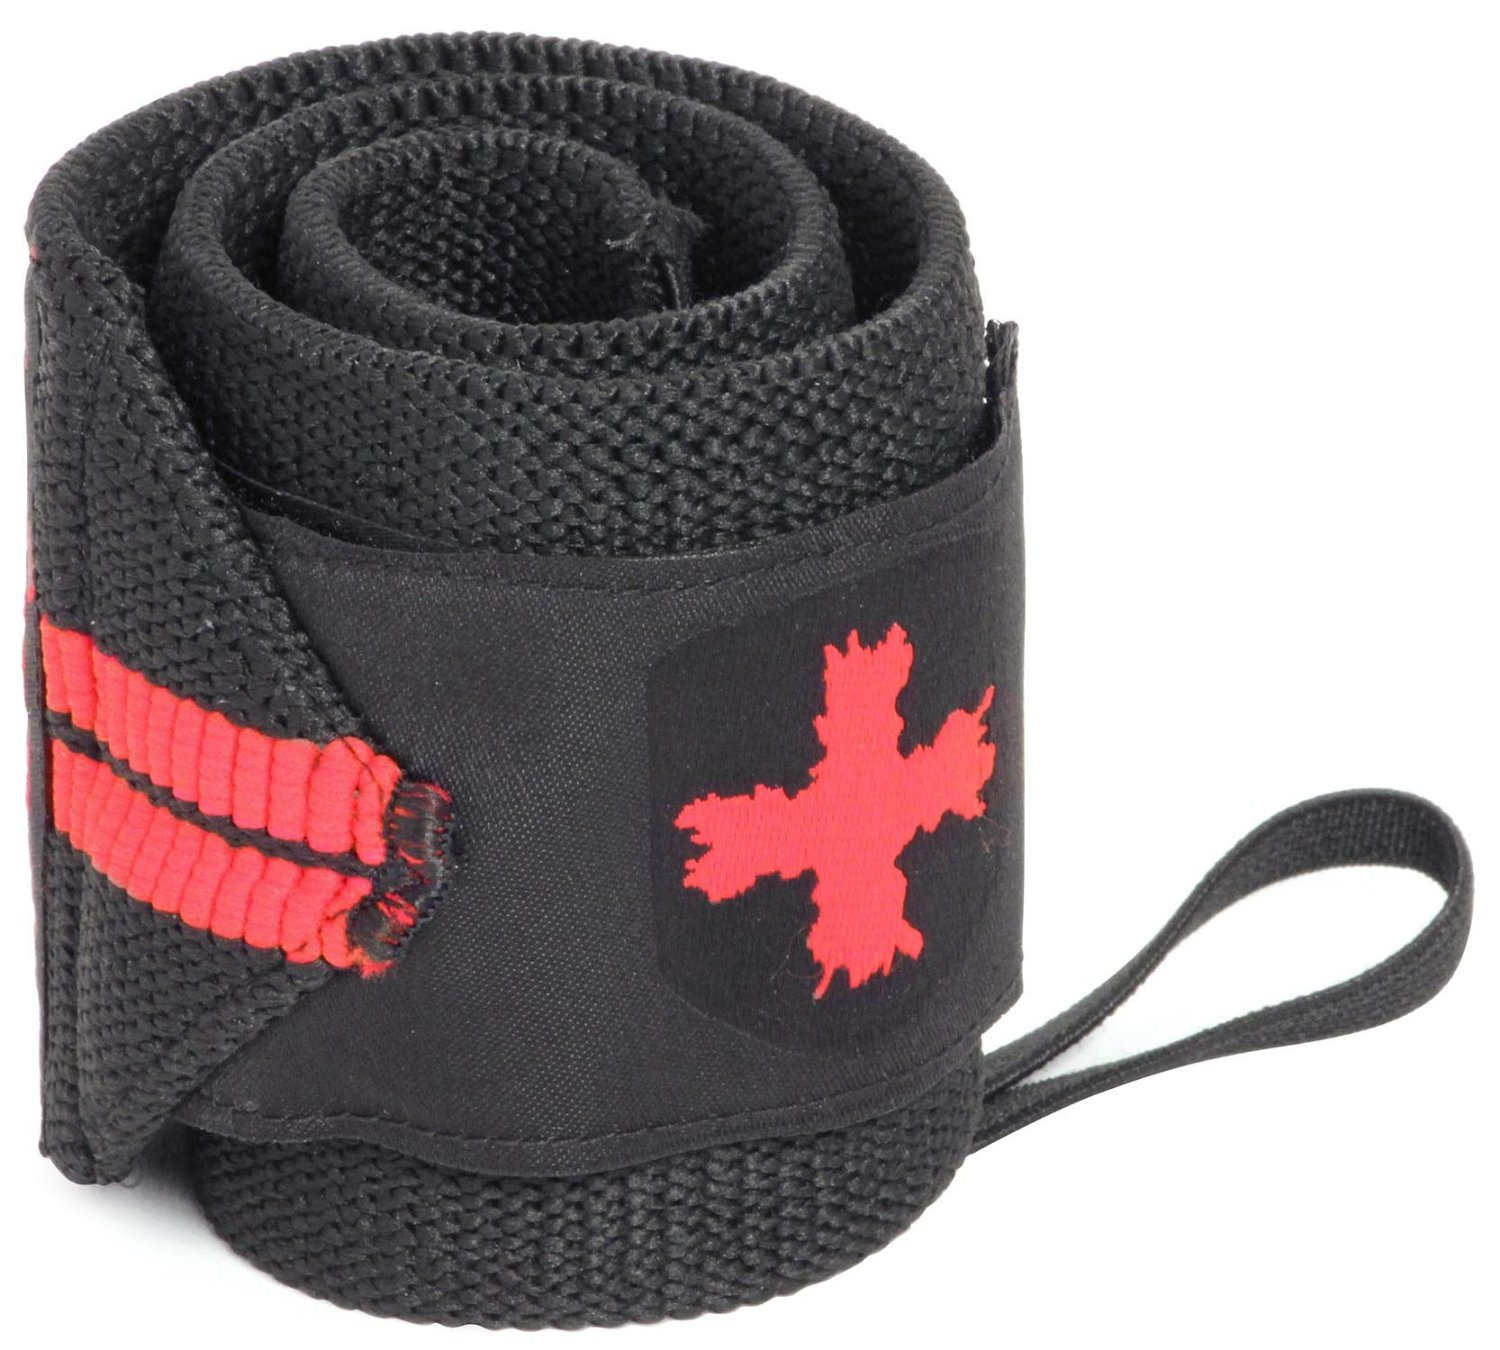 iron-paradise-fitness-gym-bag-essentials-harbinger-wrist-wraps